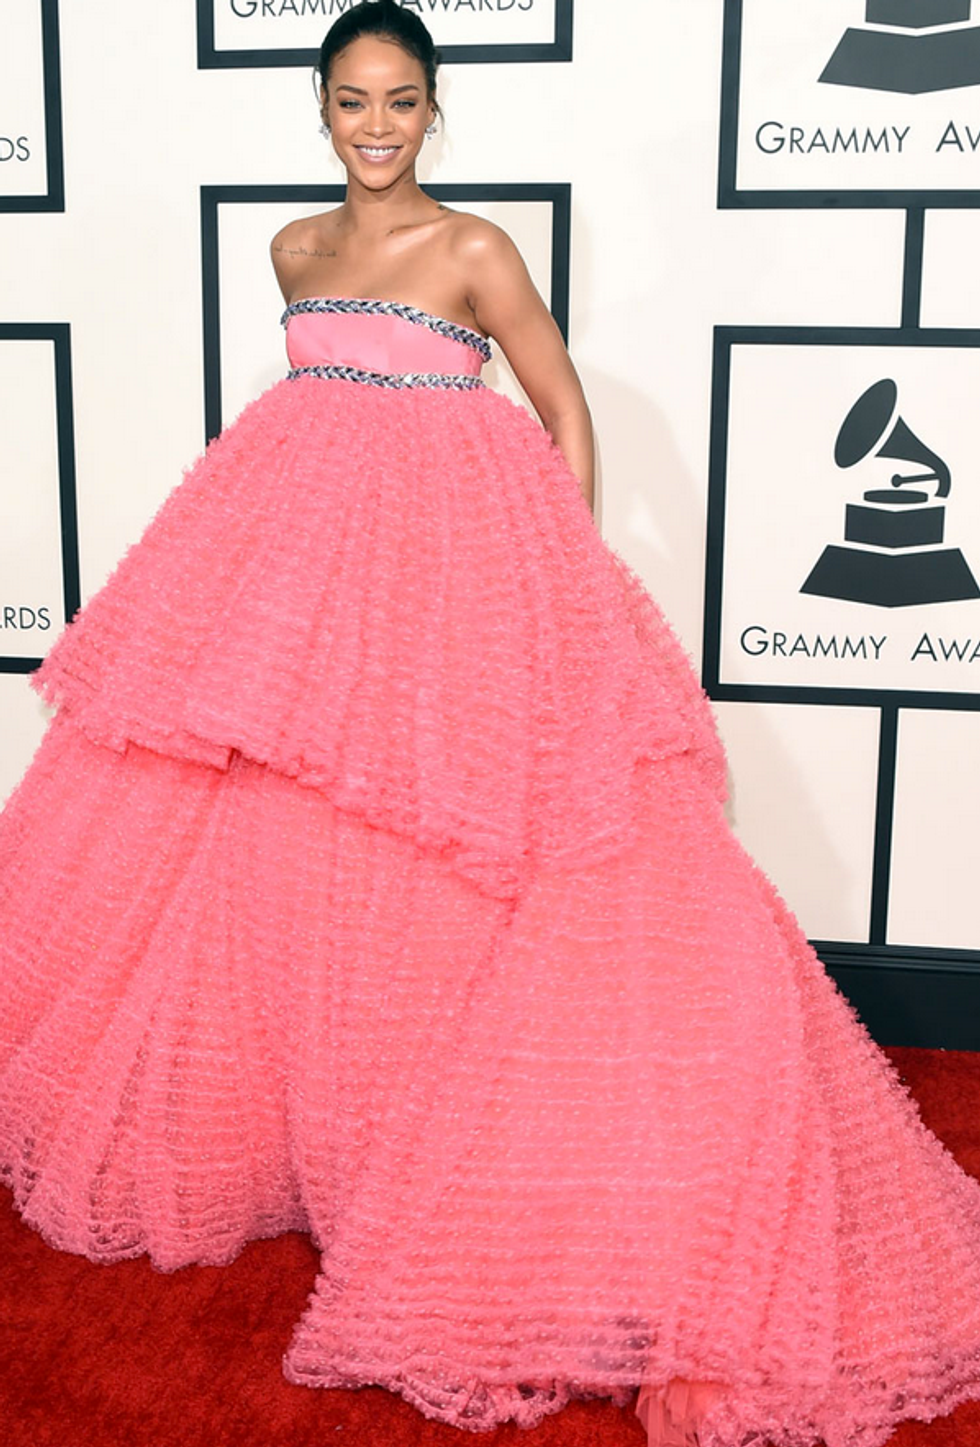 The Best and Worst Celebrity Fashion at the Grammys